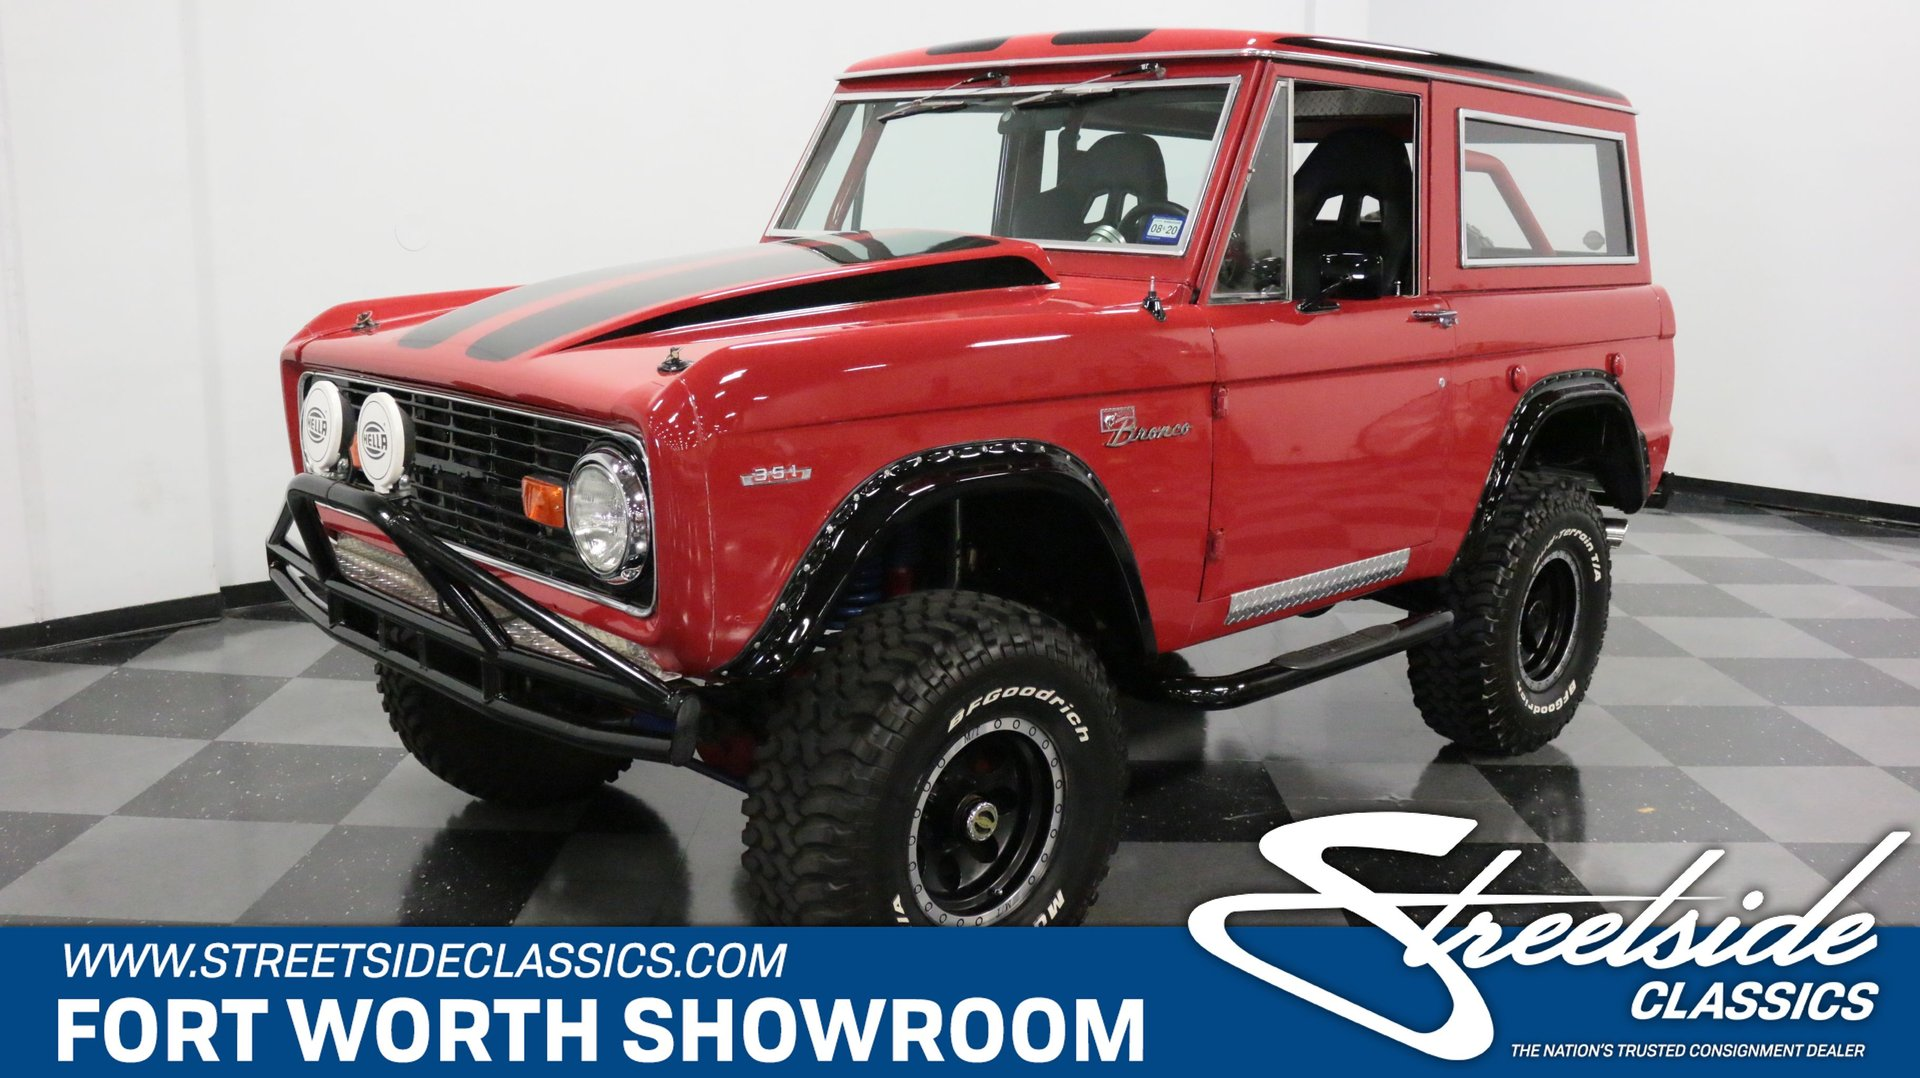 1969 Ford Bronco Classic Cars For Sale Streetside Classics The Nation S 1 Consignment Dealer